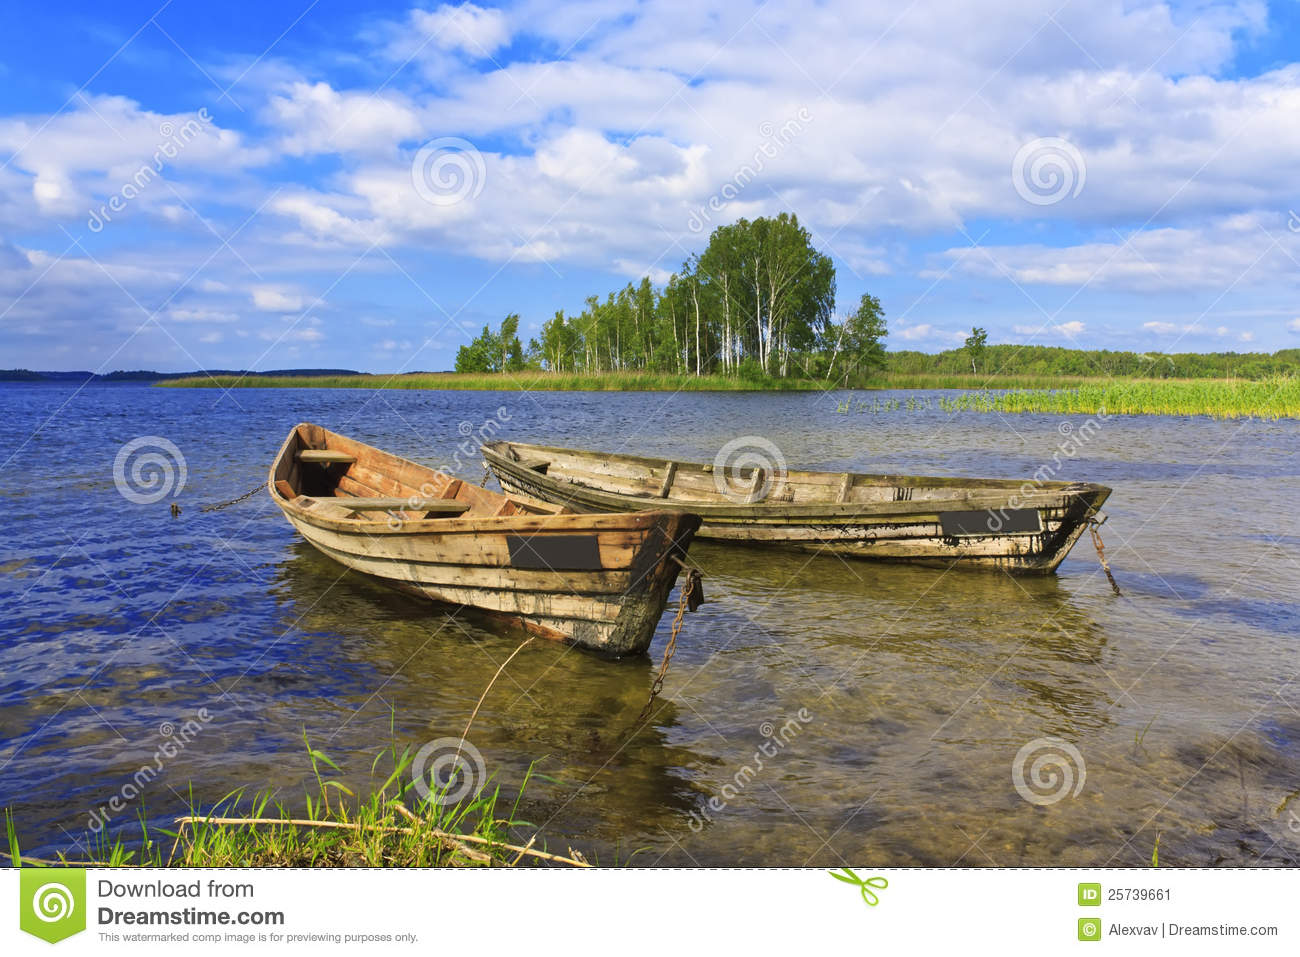 Two boats on the lake on blue sky background